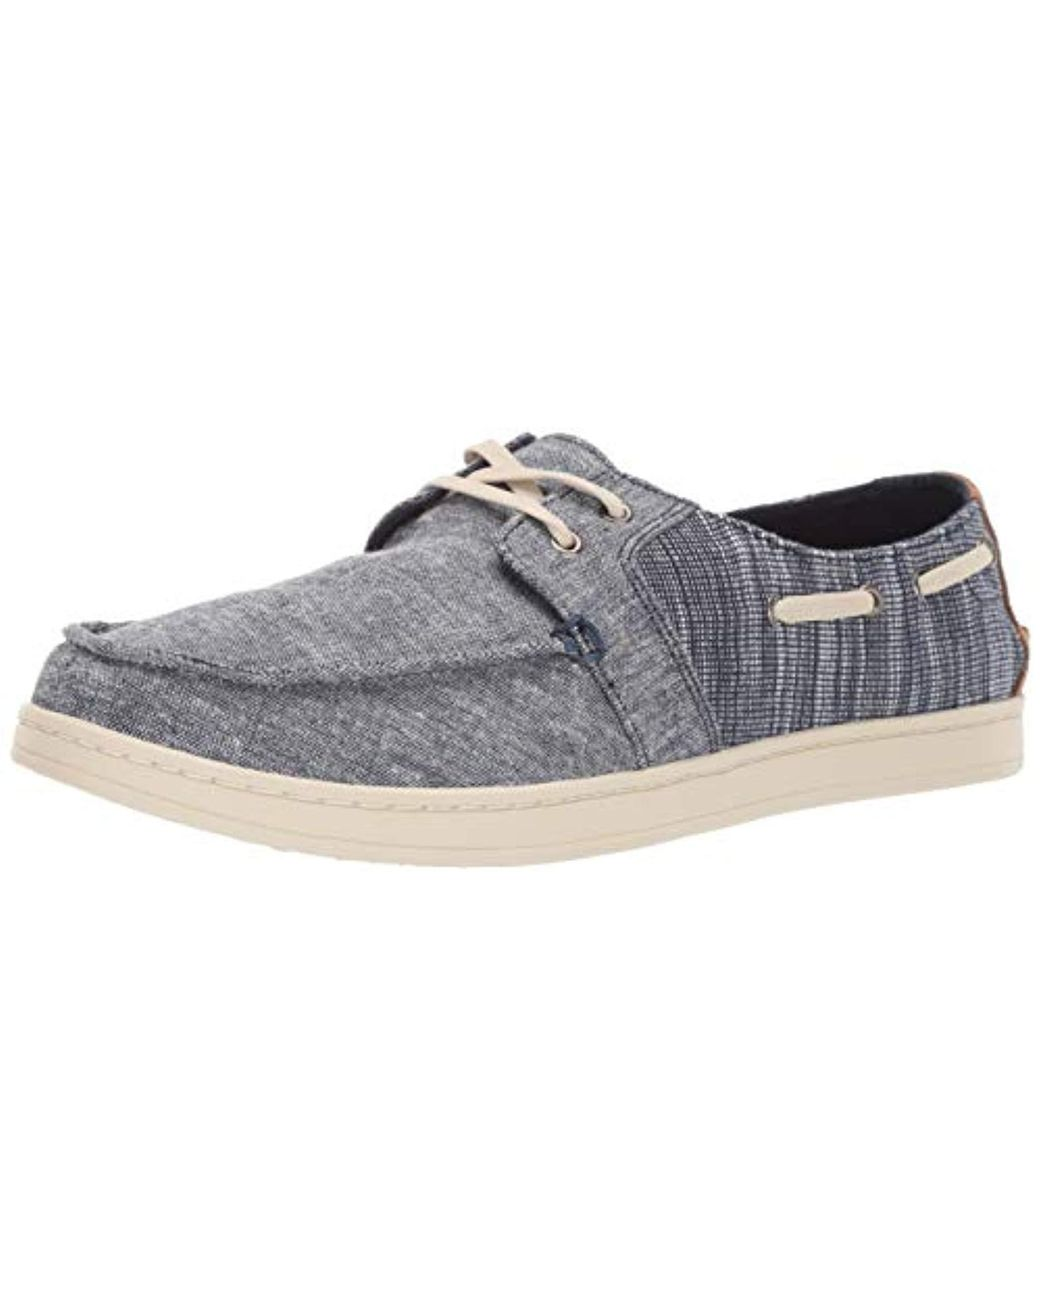 4ebf69c814d Lyst - TOMS Culver Boat Shoe in Blue for Men - Save 56%